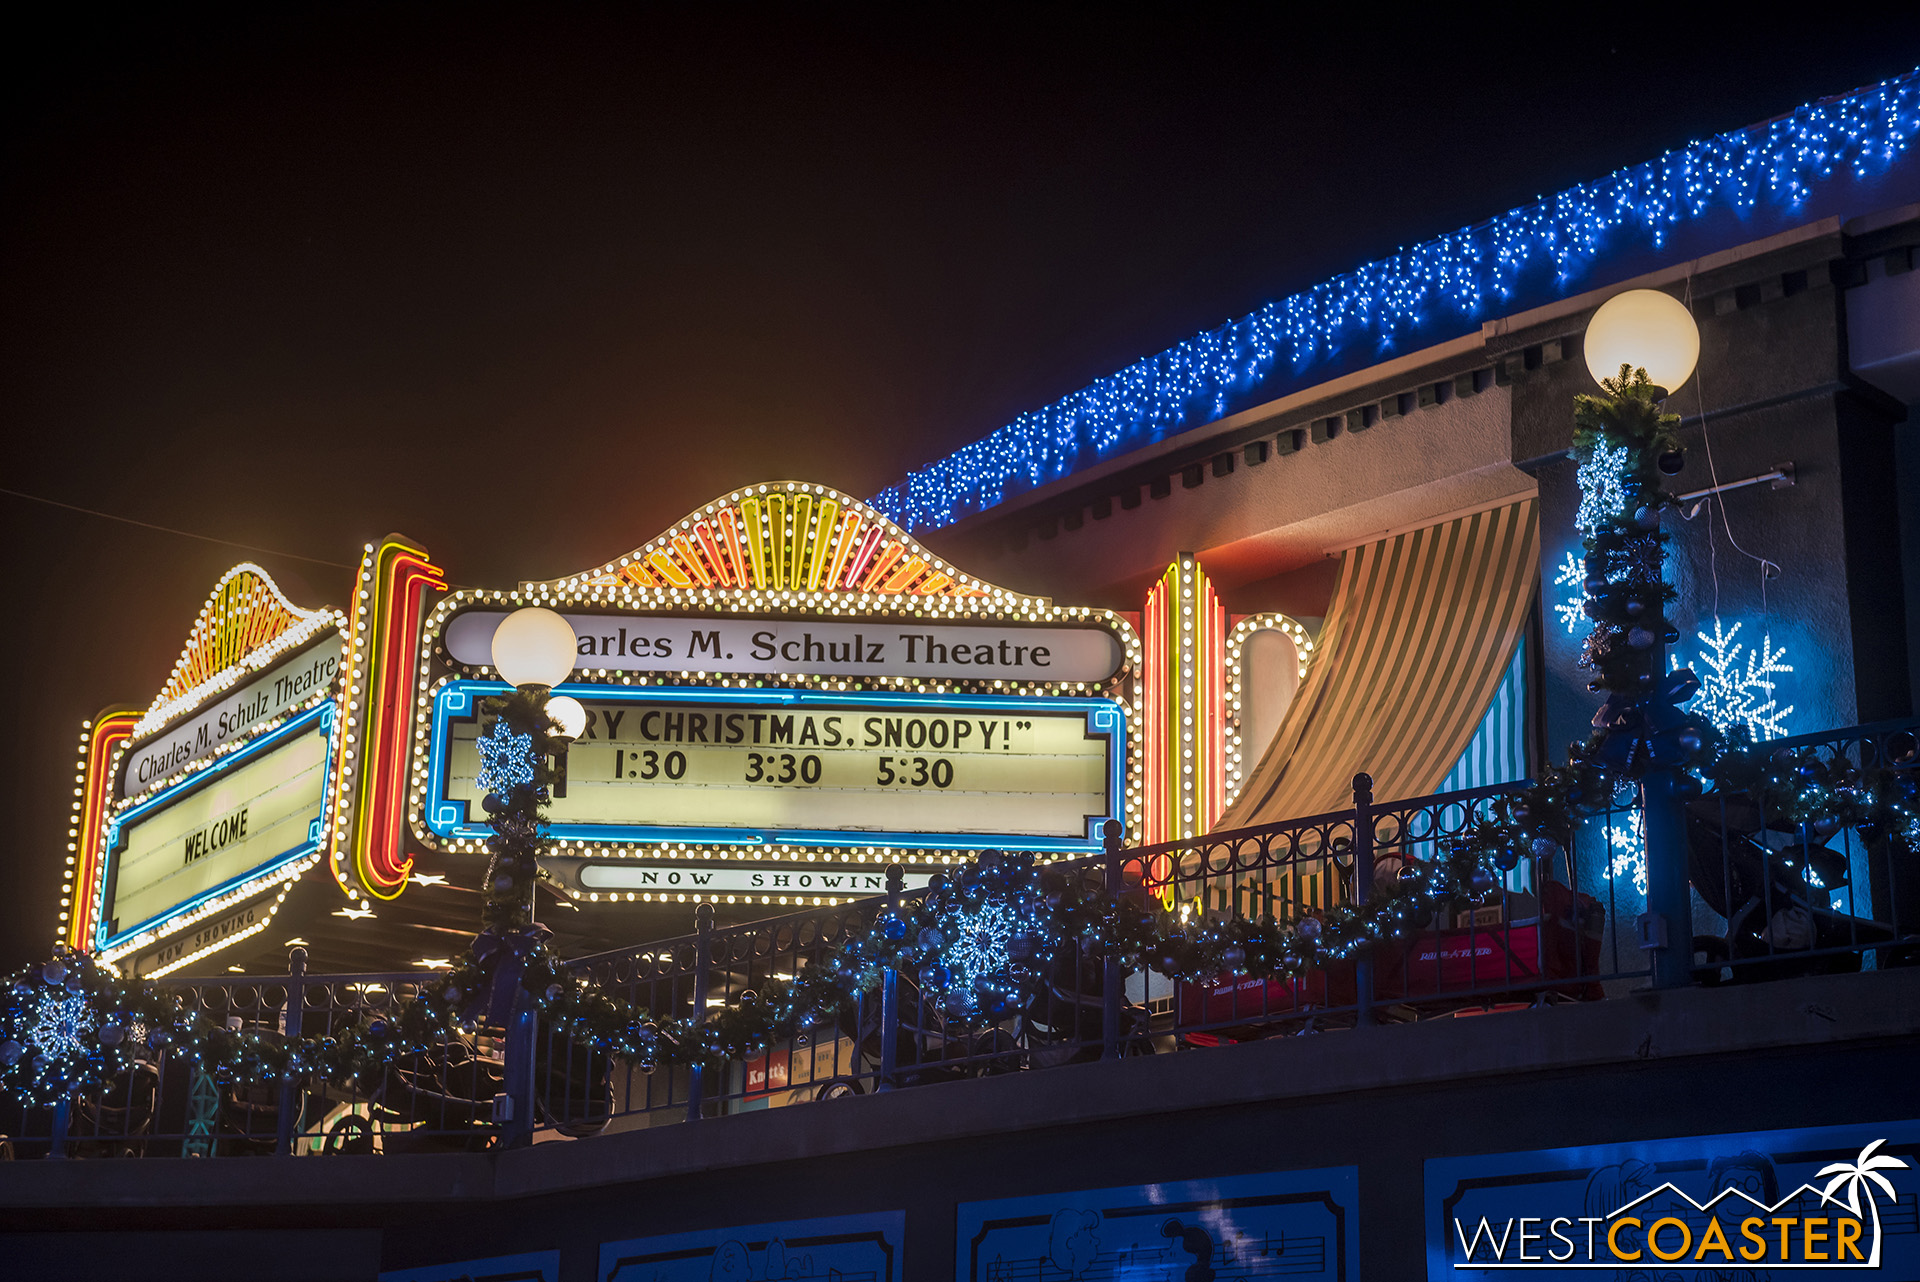 The Snoopy ice show plays three times a day, during the afternoon hours.